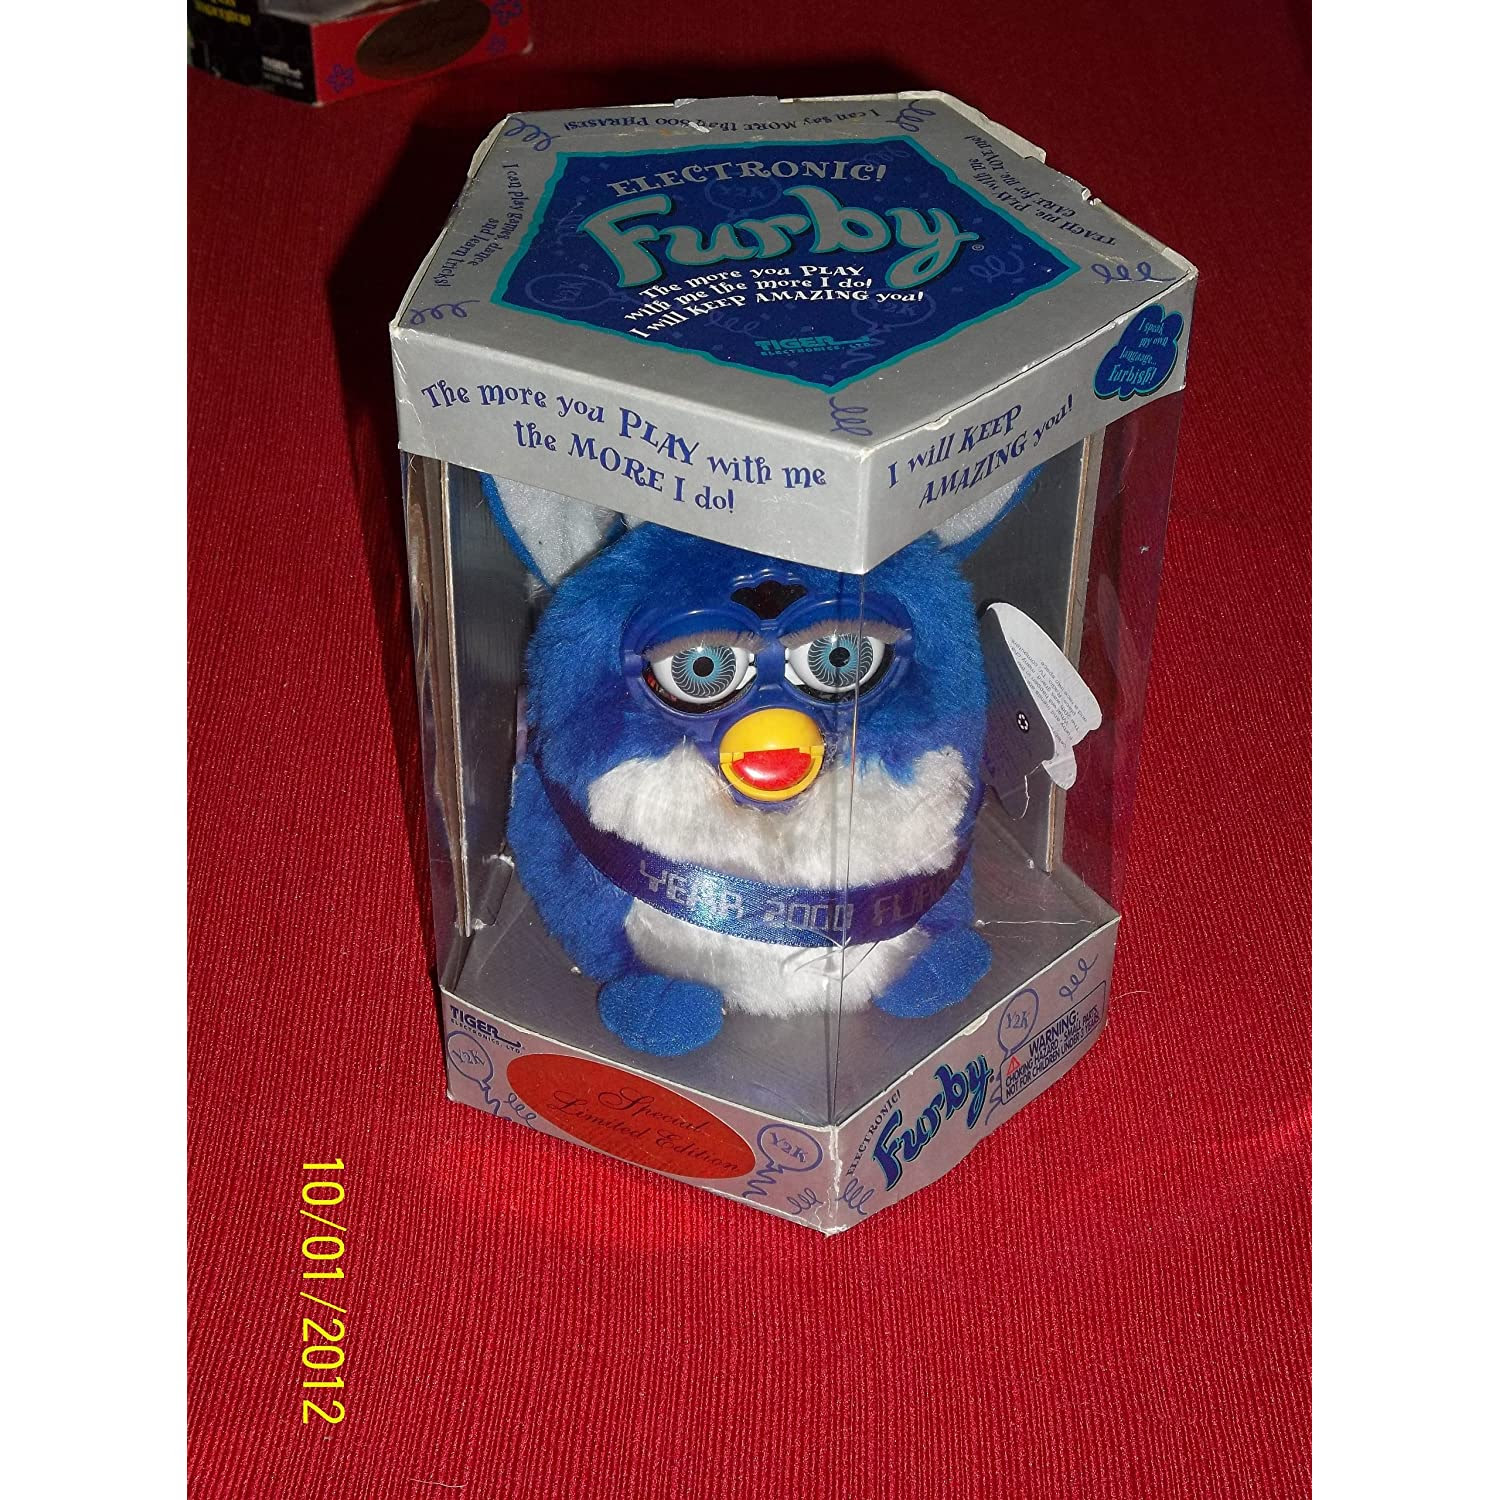 Special Limited Edition Millennium Furby